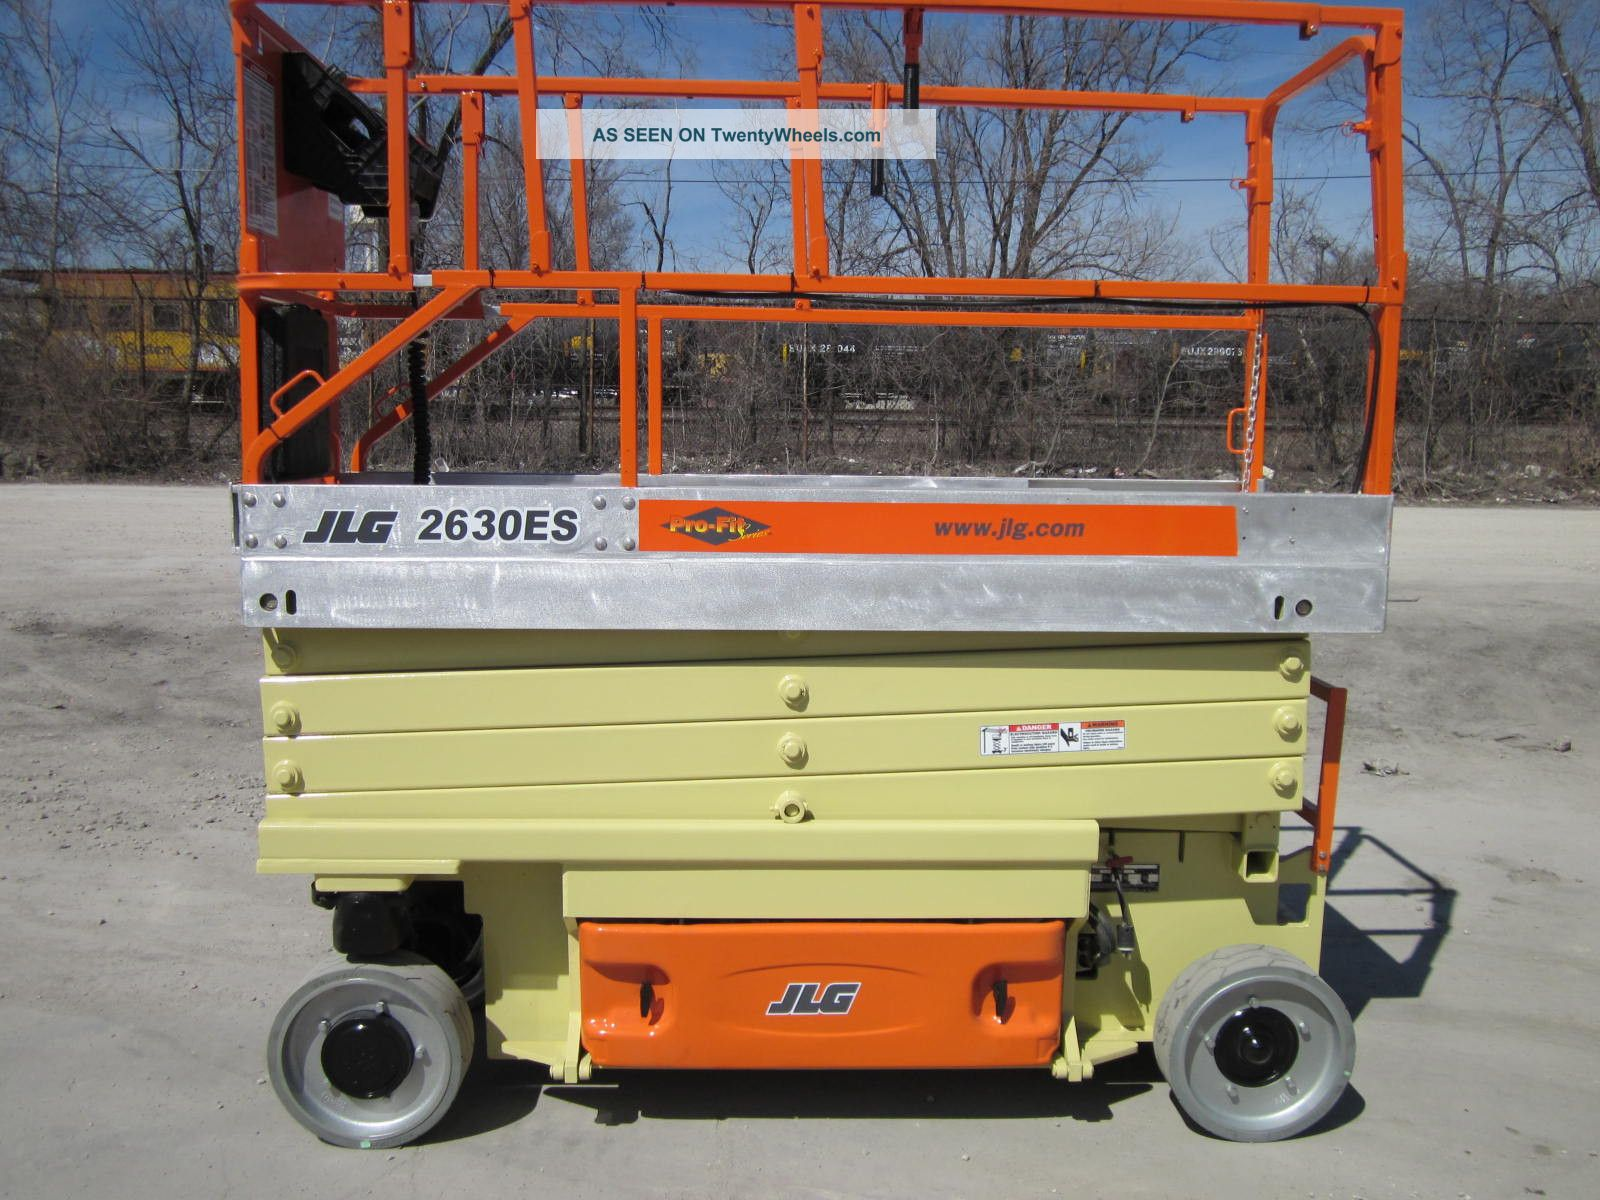 2005 Jlg 2630es Scissor Lift Manlift Boom Aerial Genie Skyjack Lifts photo